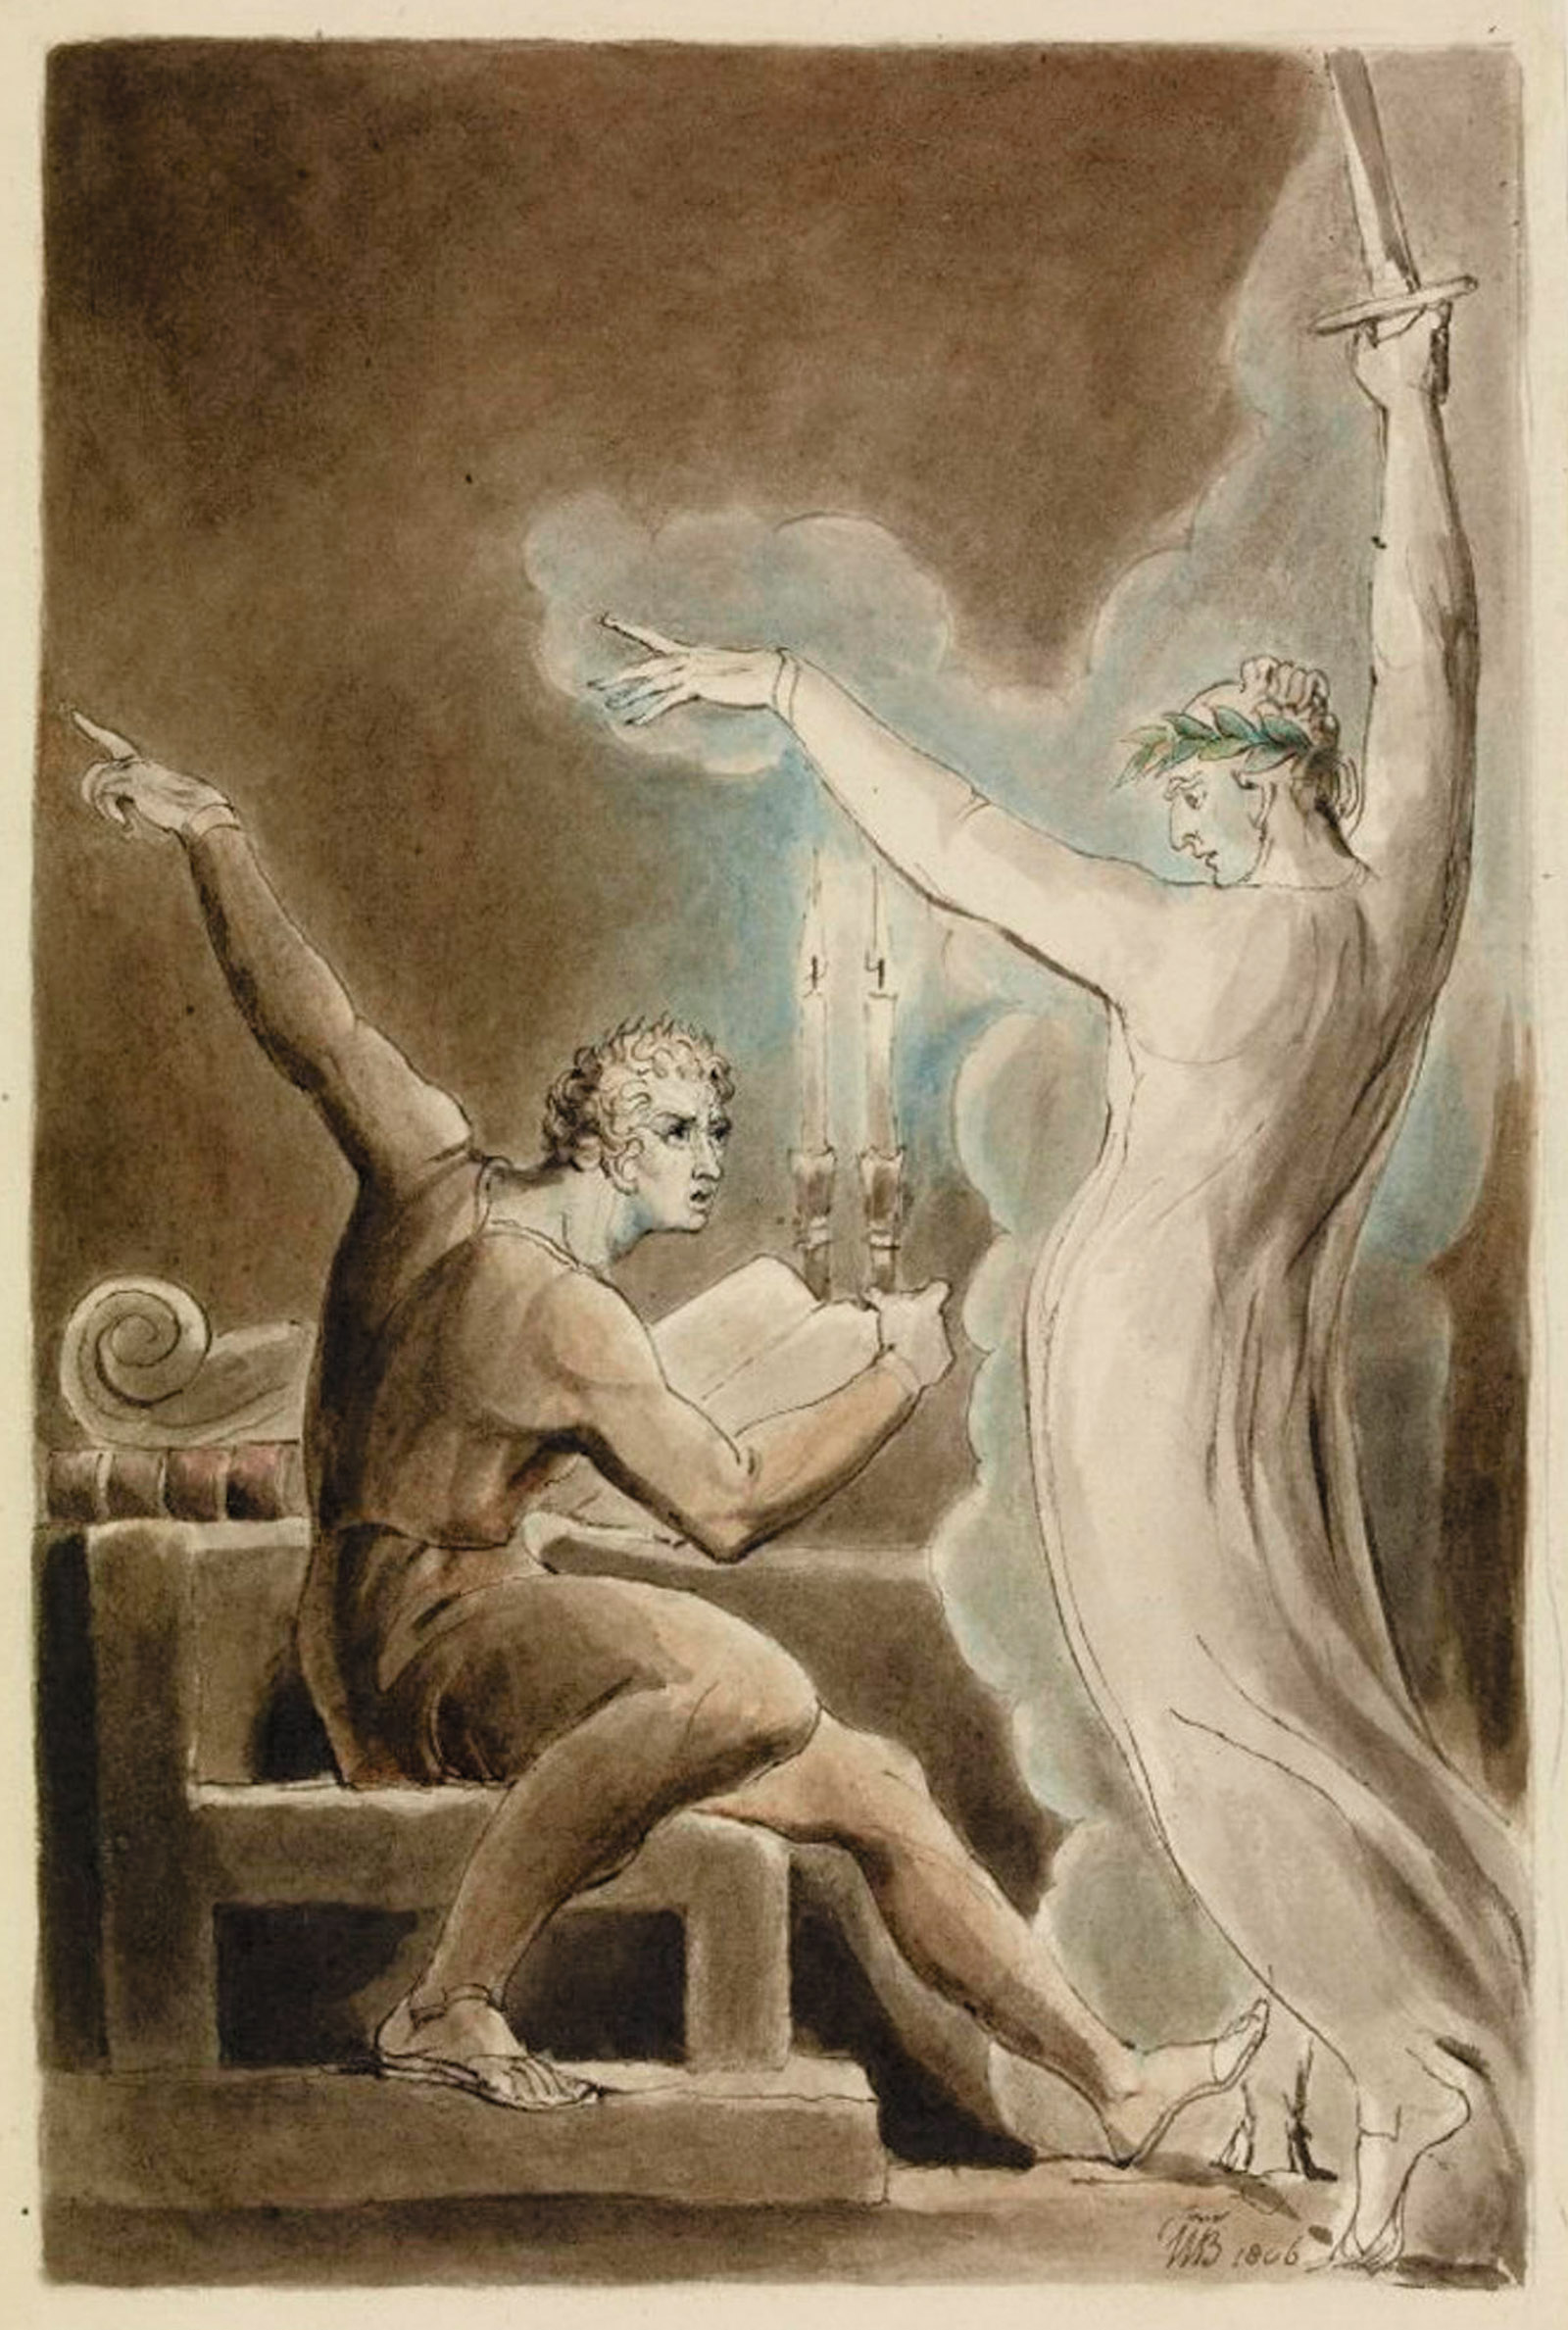 Brutus and Caesar's ghost; illustration by William Blake